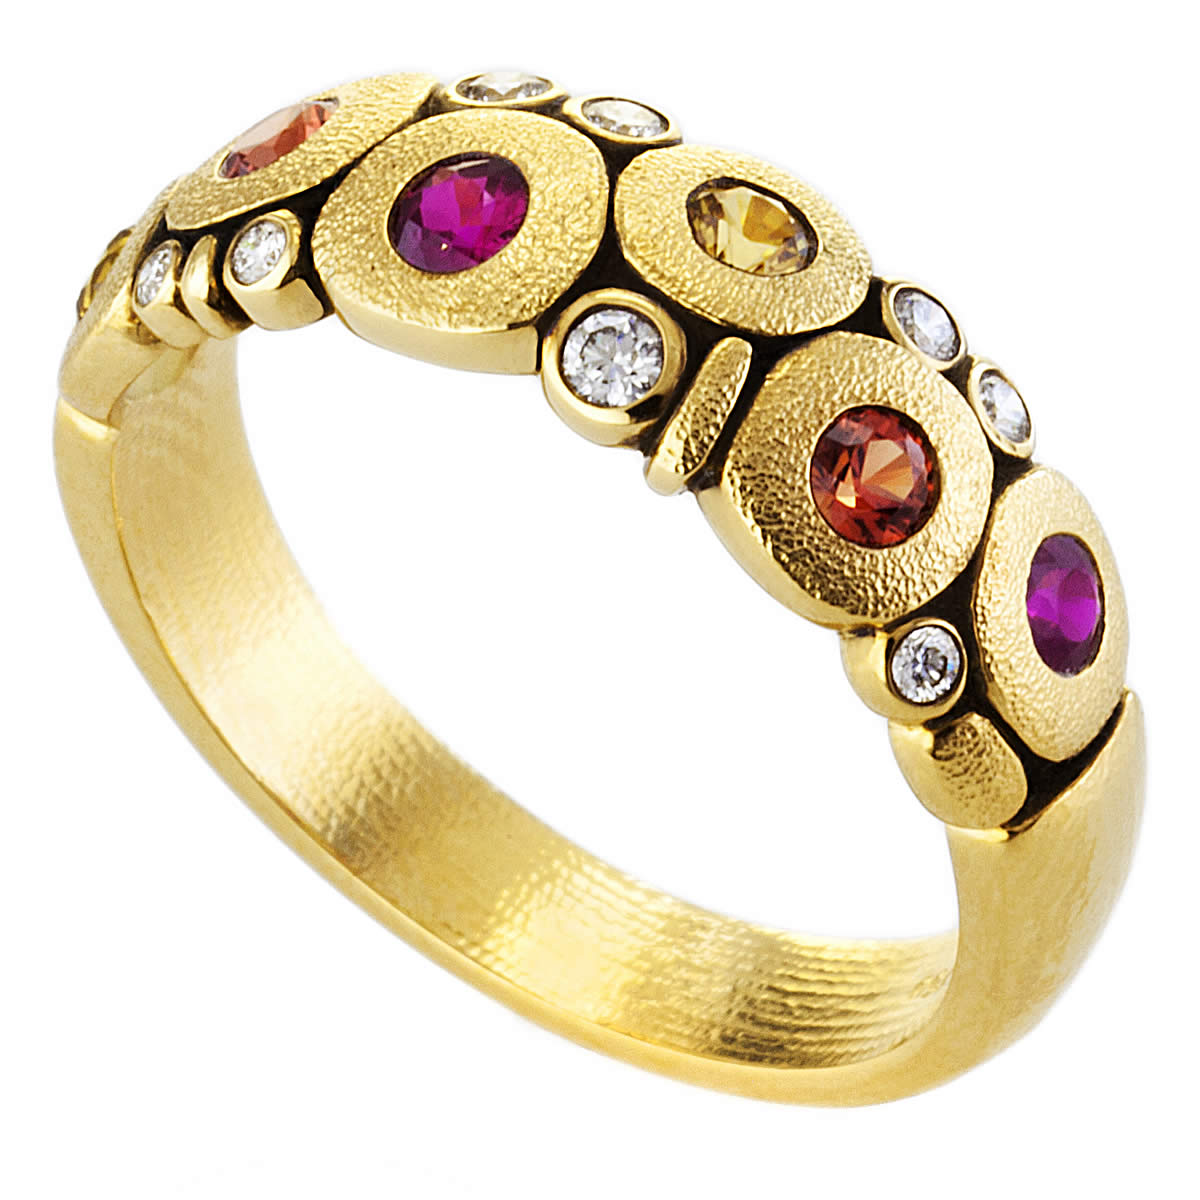 alex sepkus ring fire mix 18k yellow gold sapphire